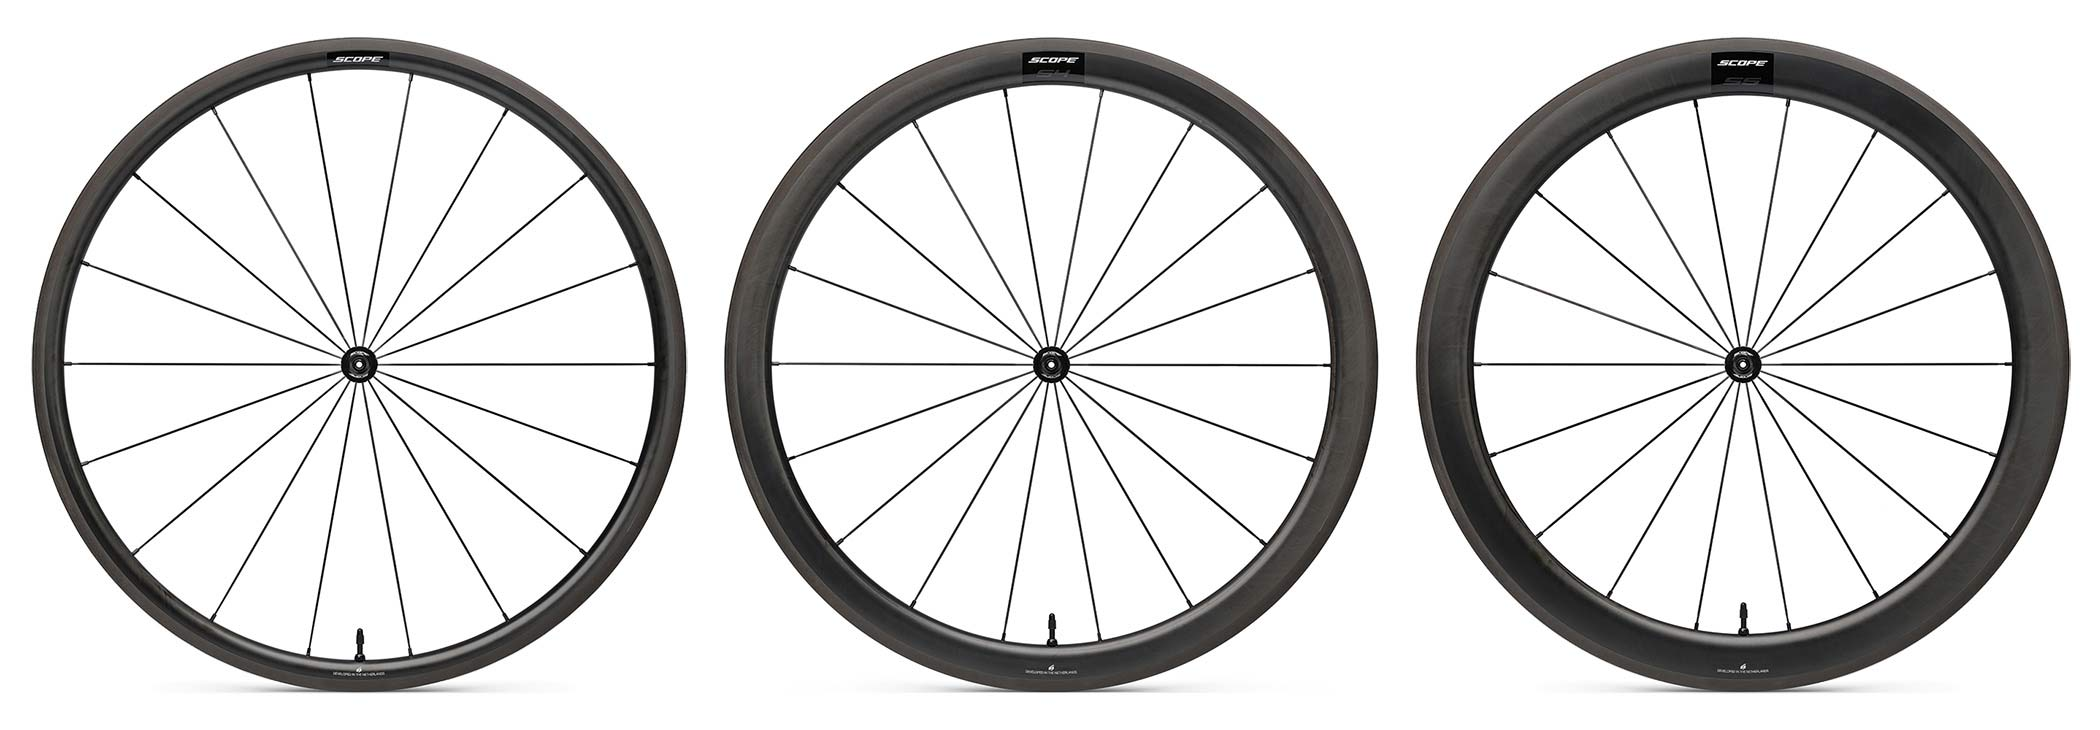 Scope Sport affordable carbon tubeless road wheels, 998€ for rim or disc brakes, three depths